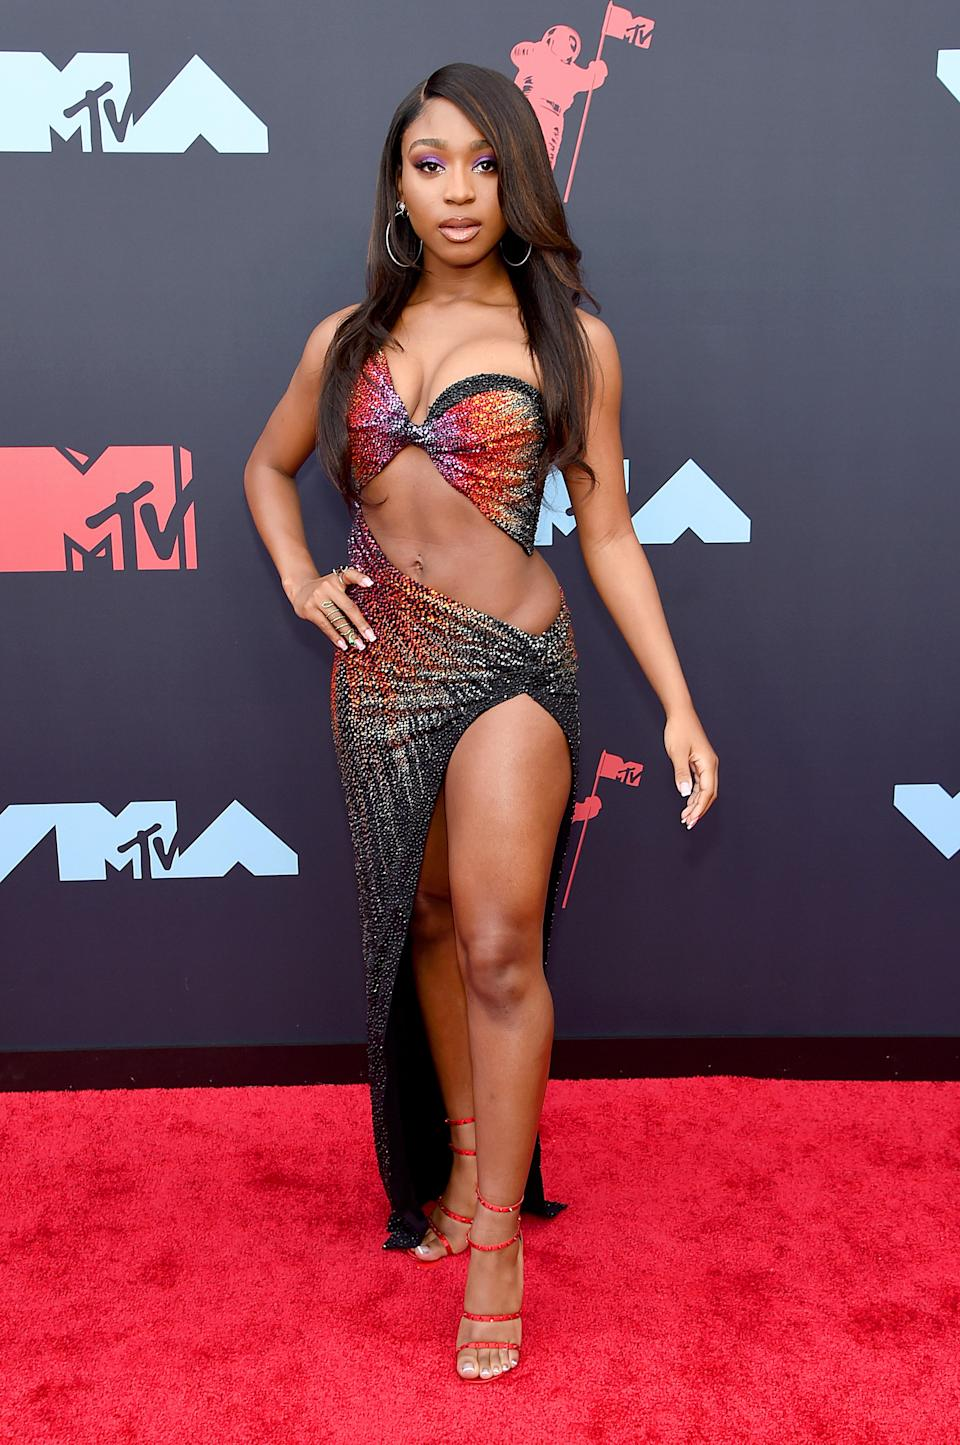 This look from Normani is so good we have to just use a full-body shot. The eye makeup matching the hues on her dress is perfection.